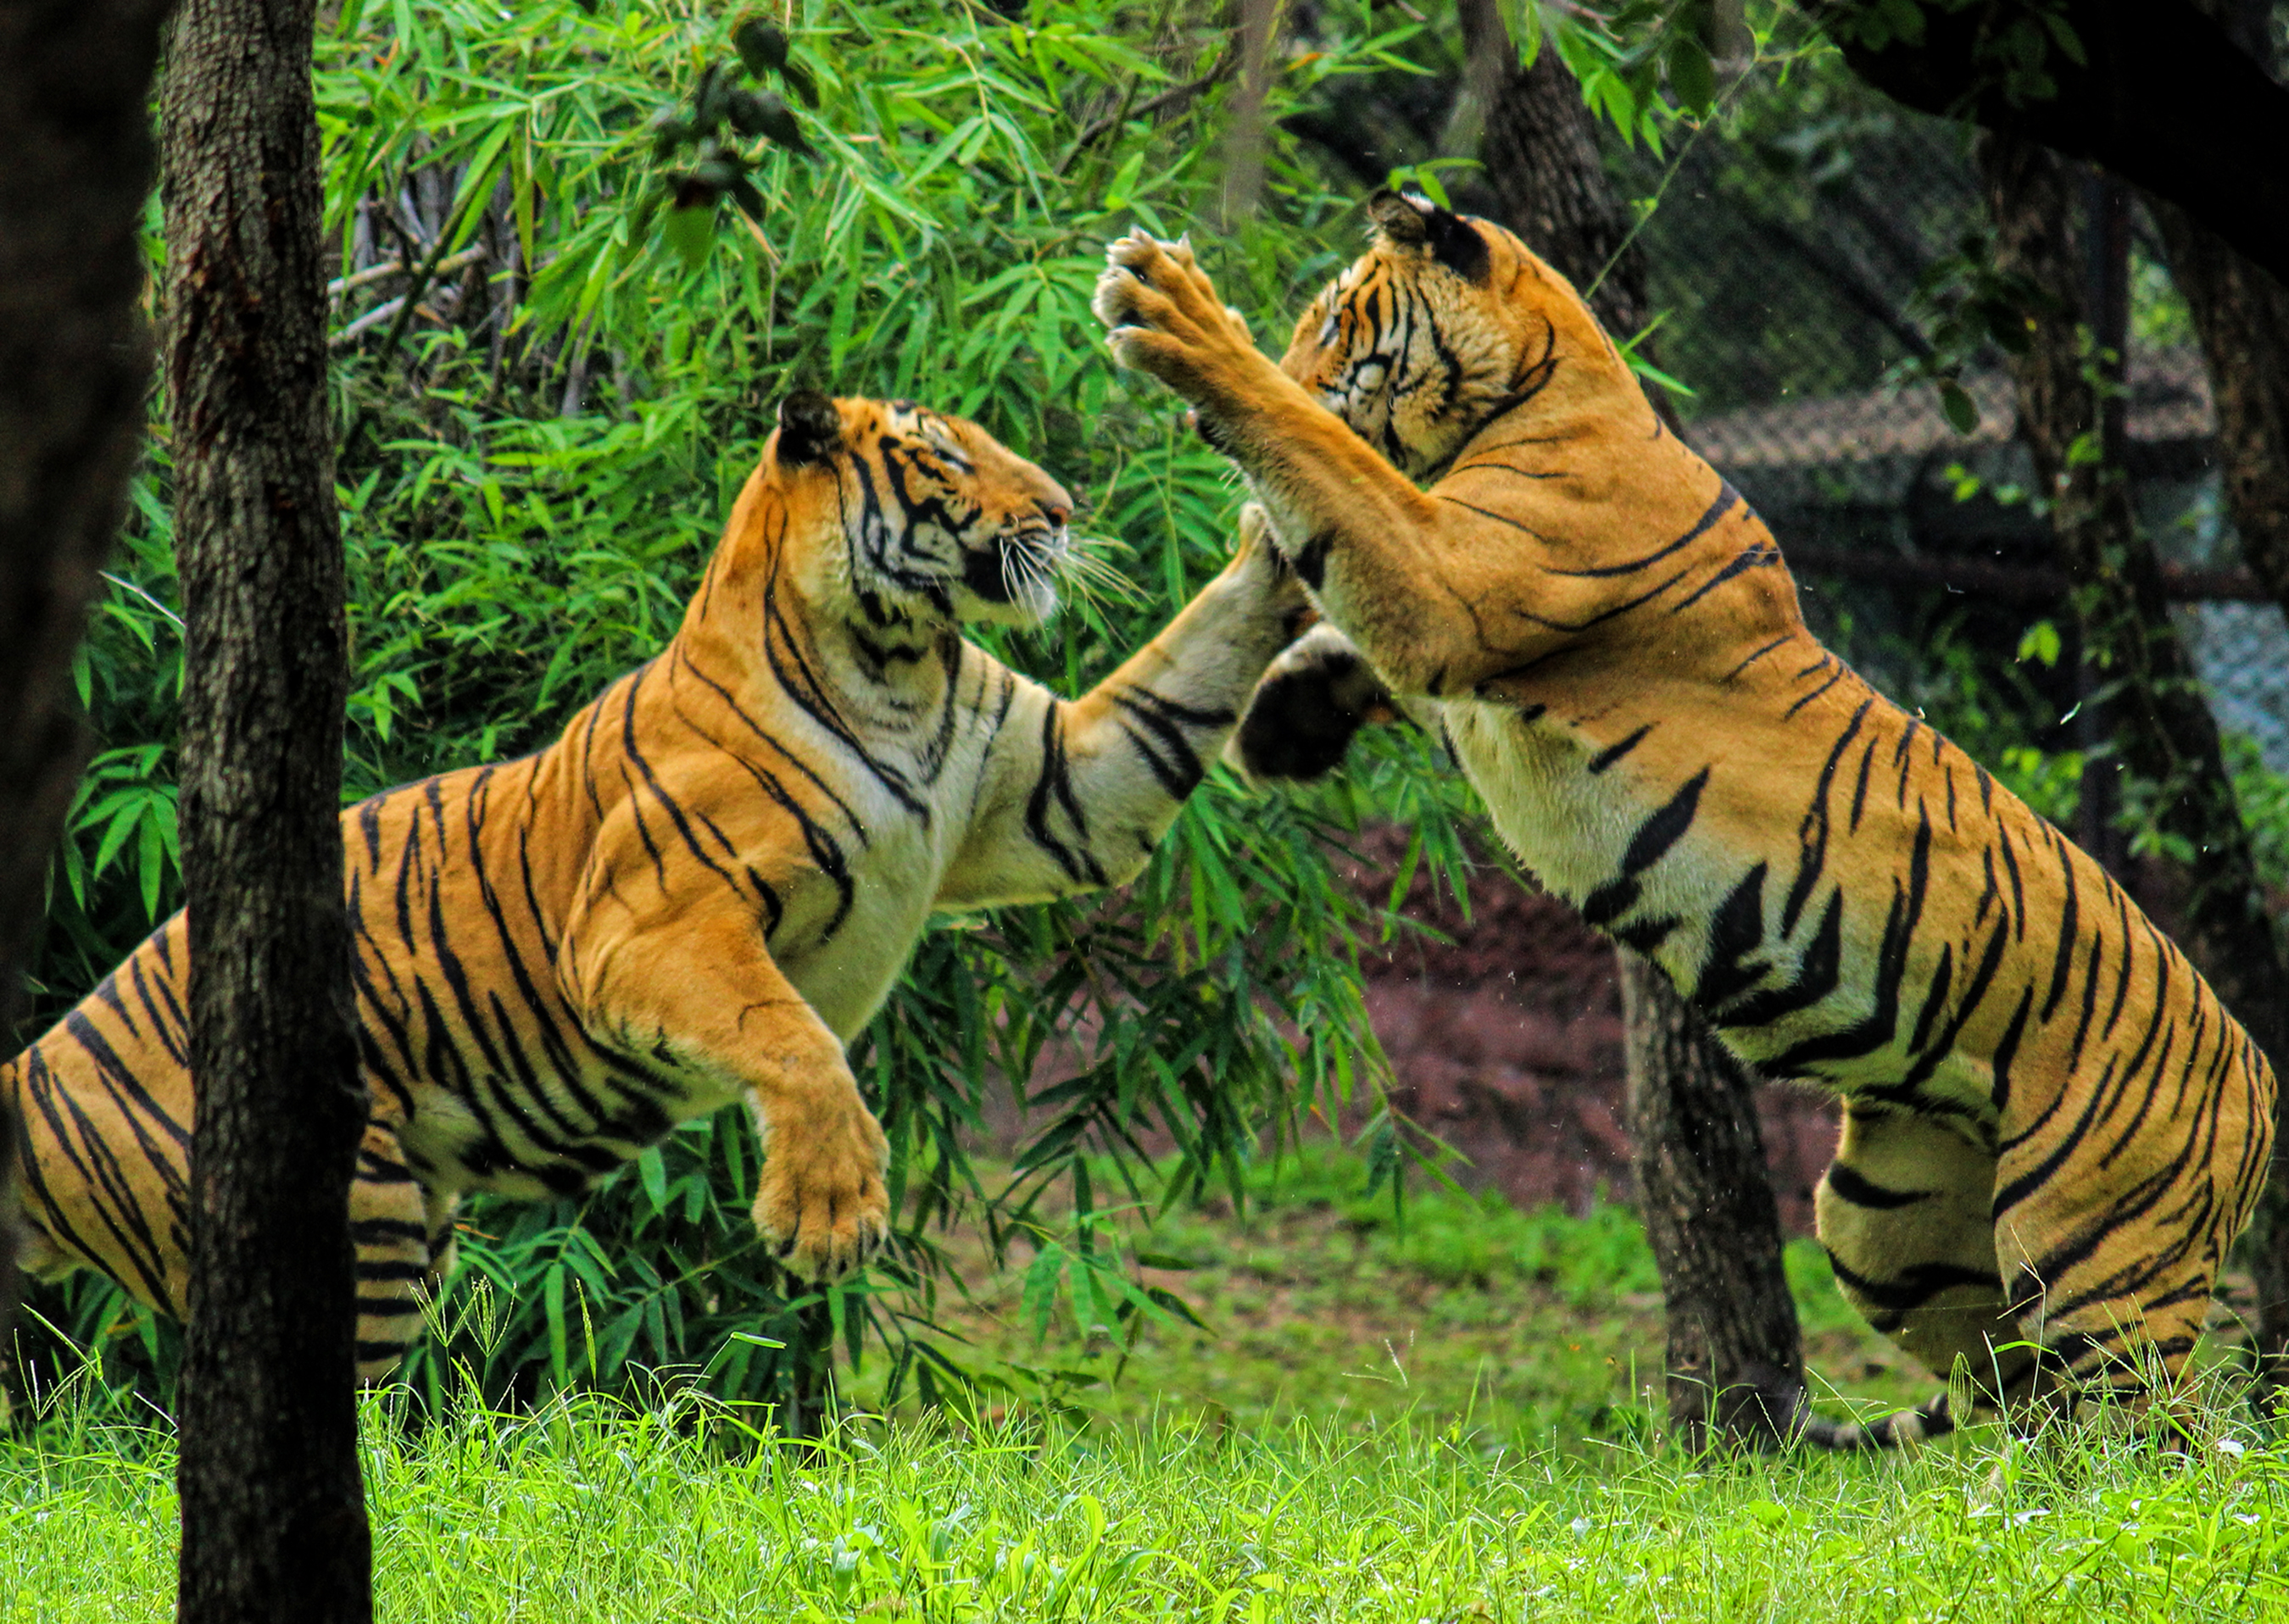 Royal bengal tiger play